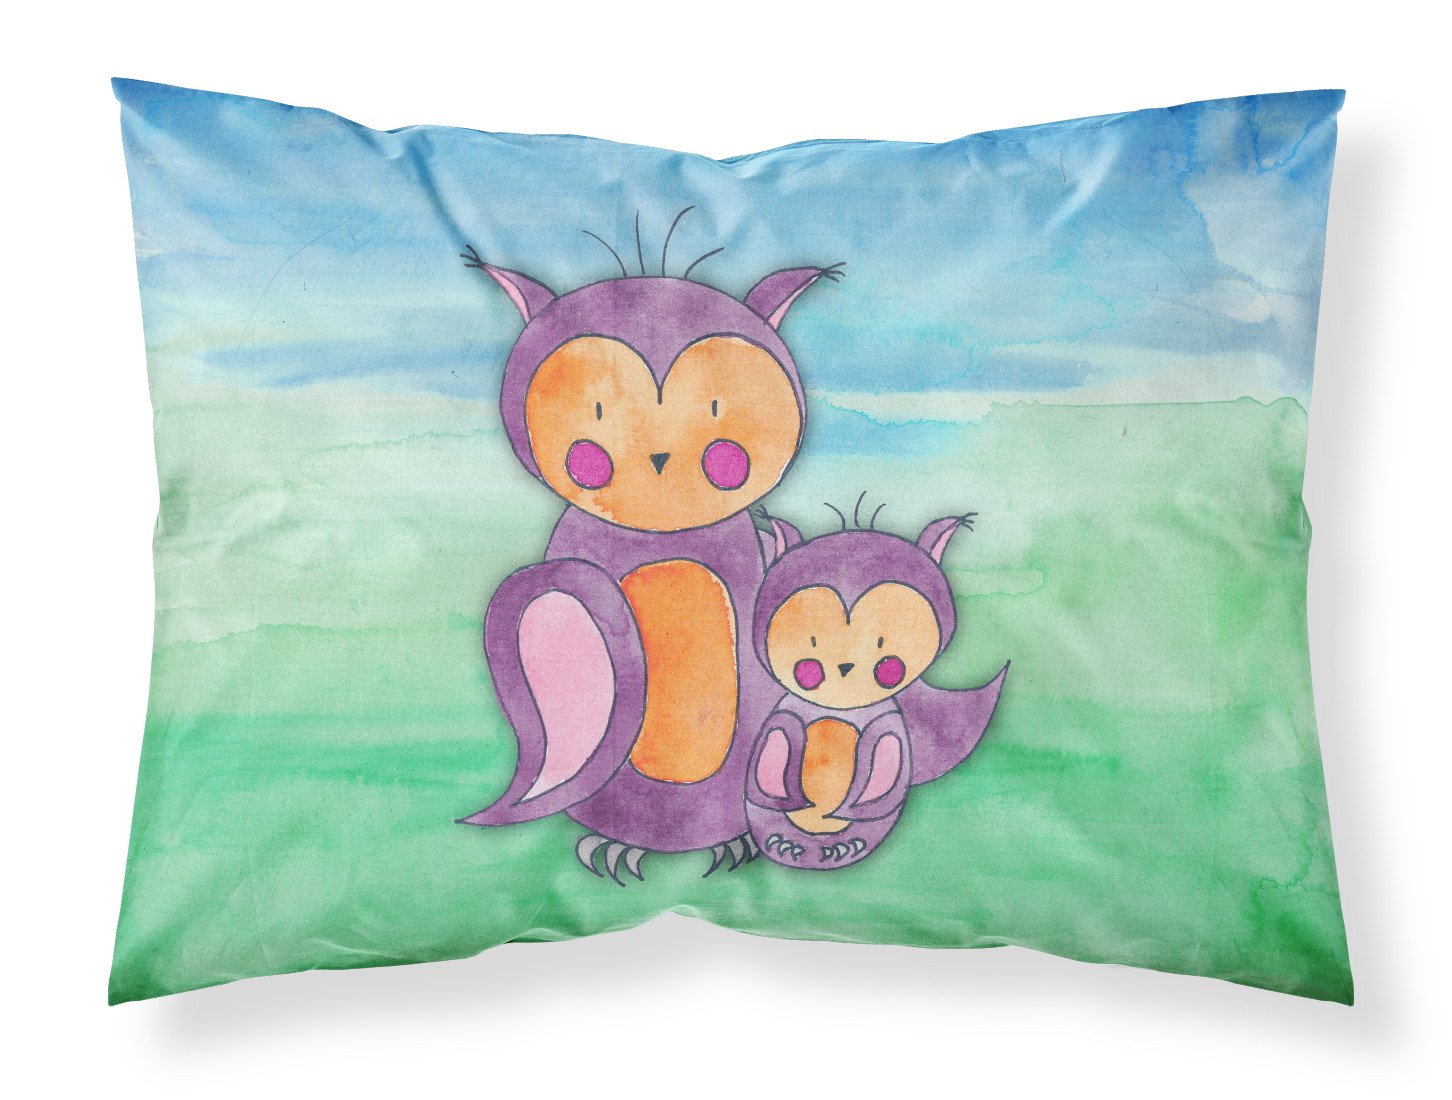 Momma and Baby Owl Watercolor Fabric Standard Pillowcase BB7430PILLOWCASE by Caroline's Treasures